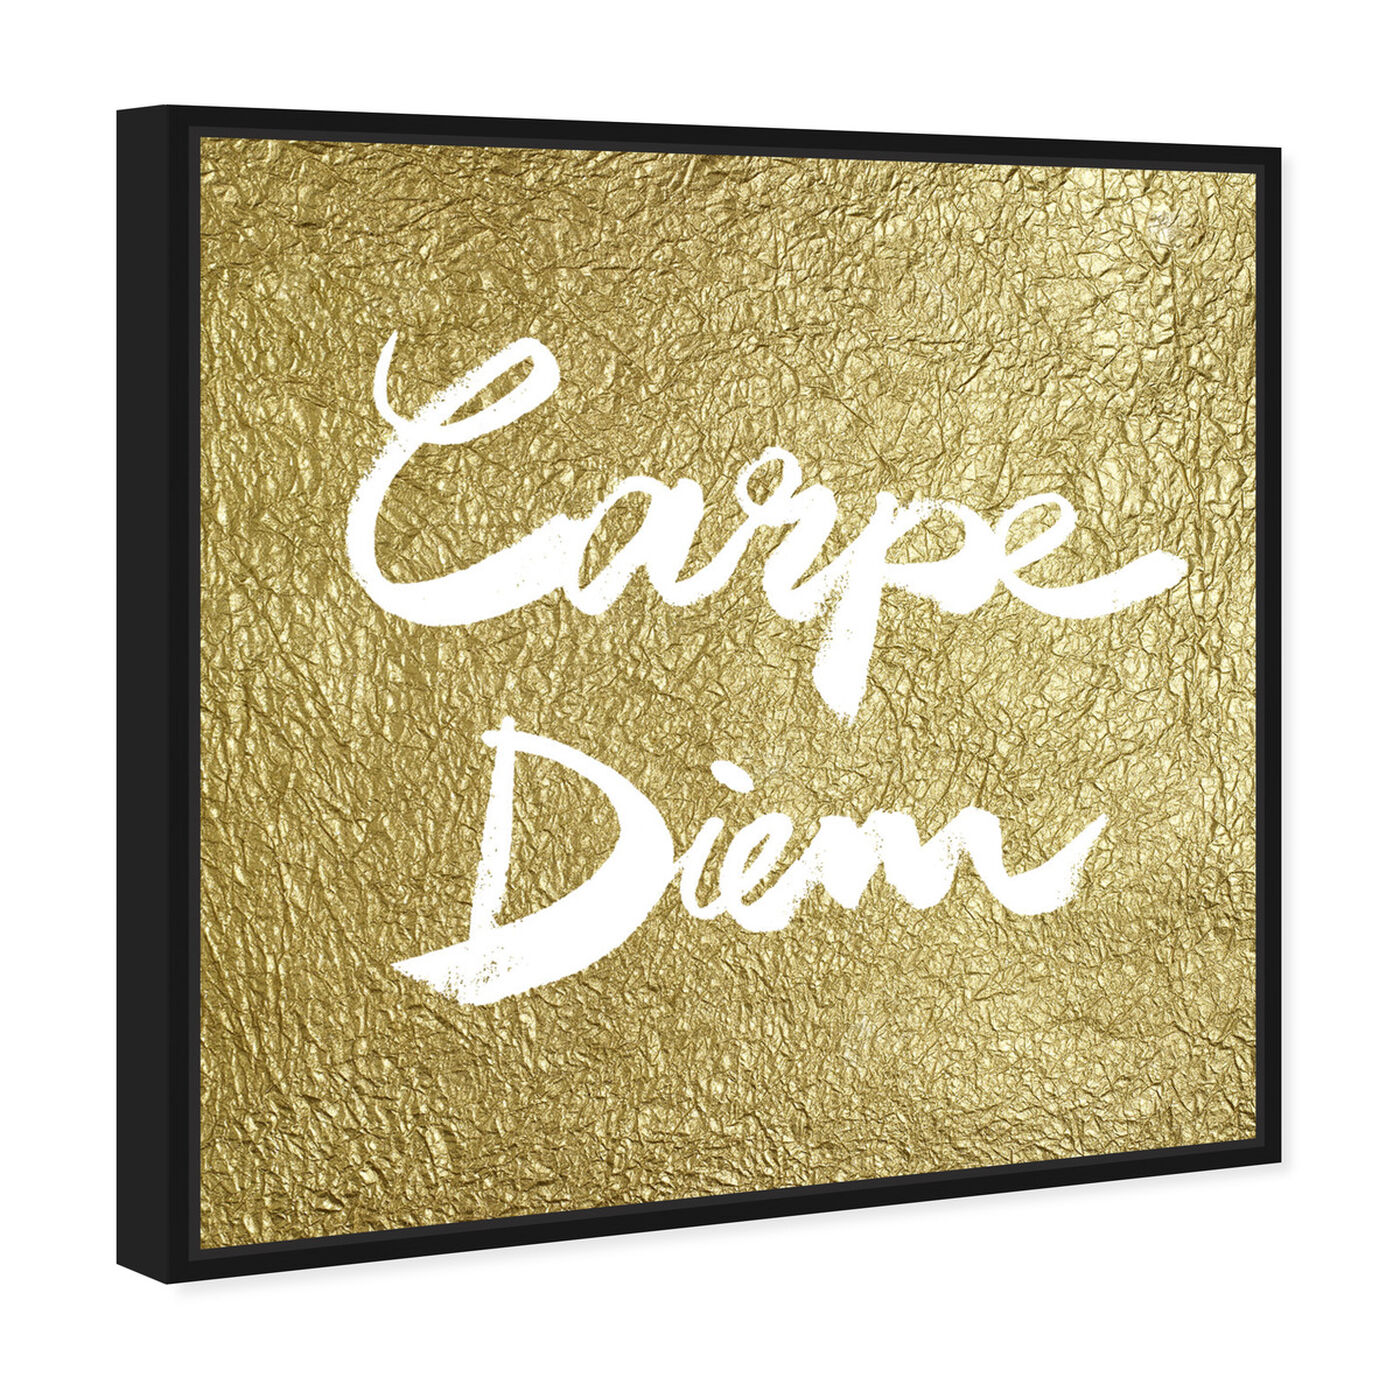 Angled view of Carpe Diem Gold featuring typography and quotes and inspirational quotes and sayings art.